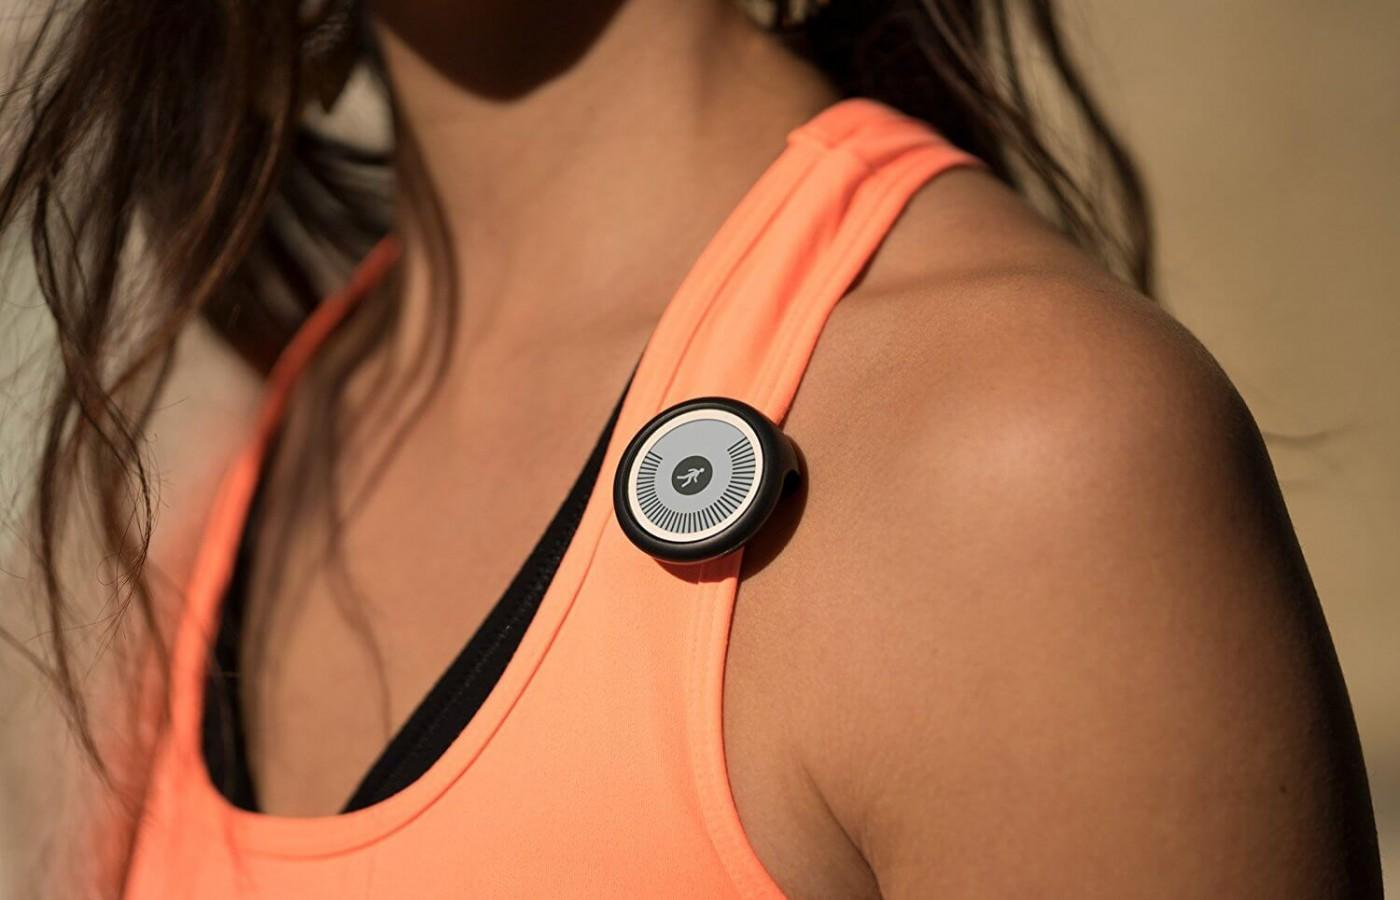 Nokia Go can be worn as a watch or worn clipped onto clothes